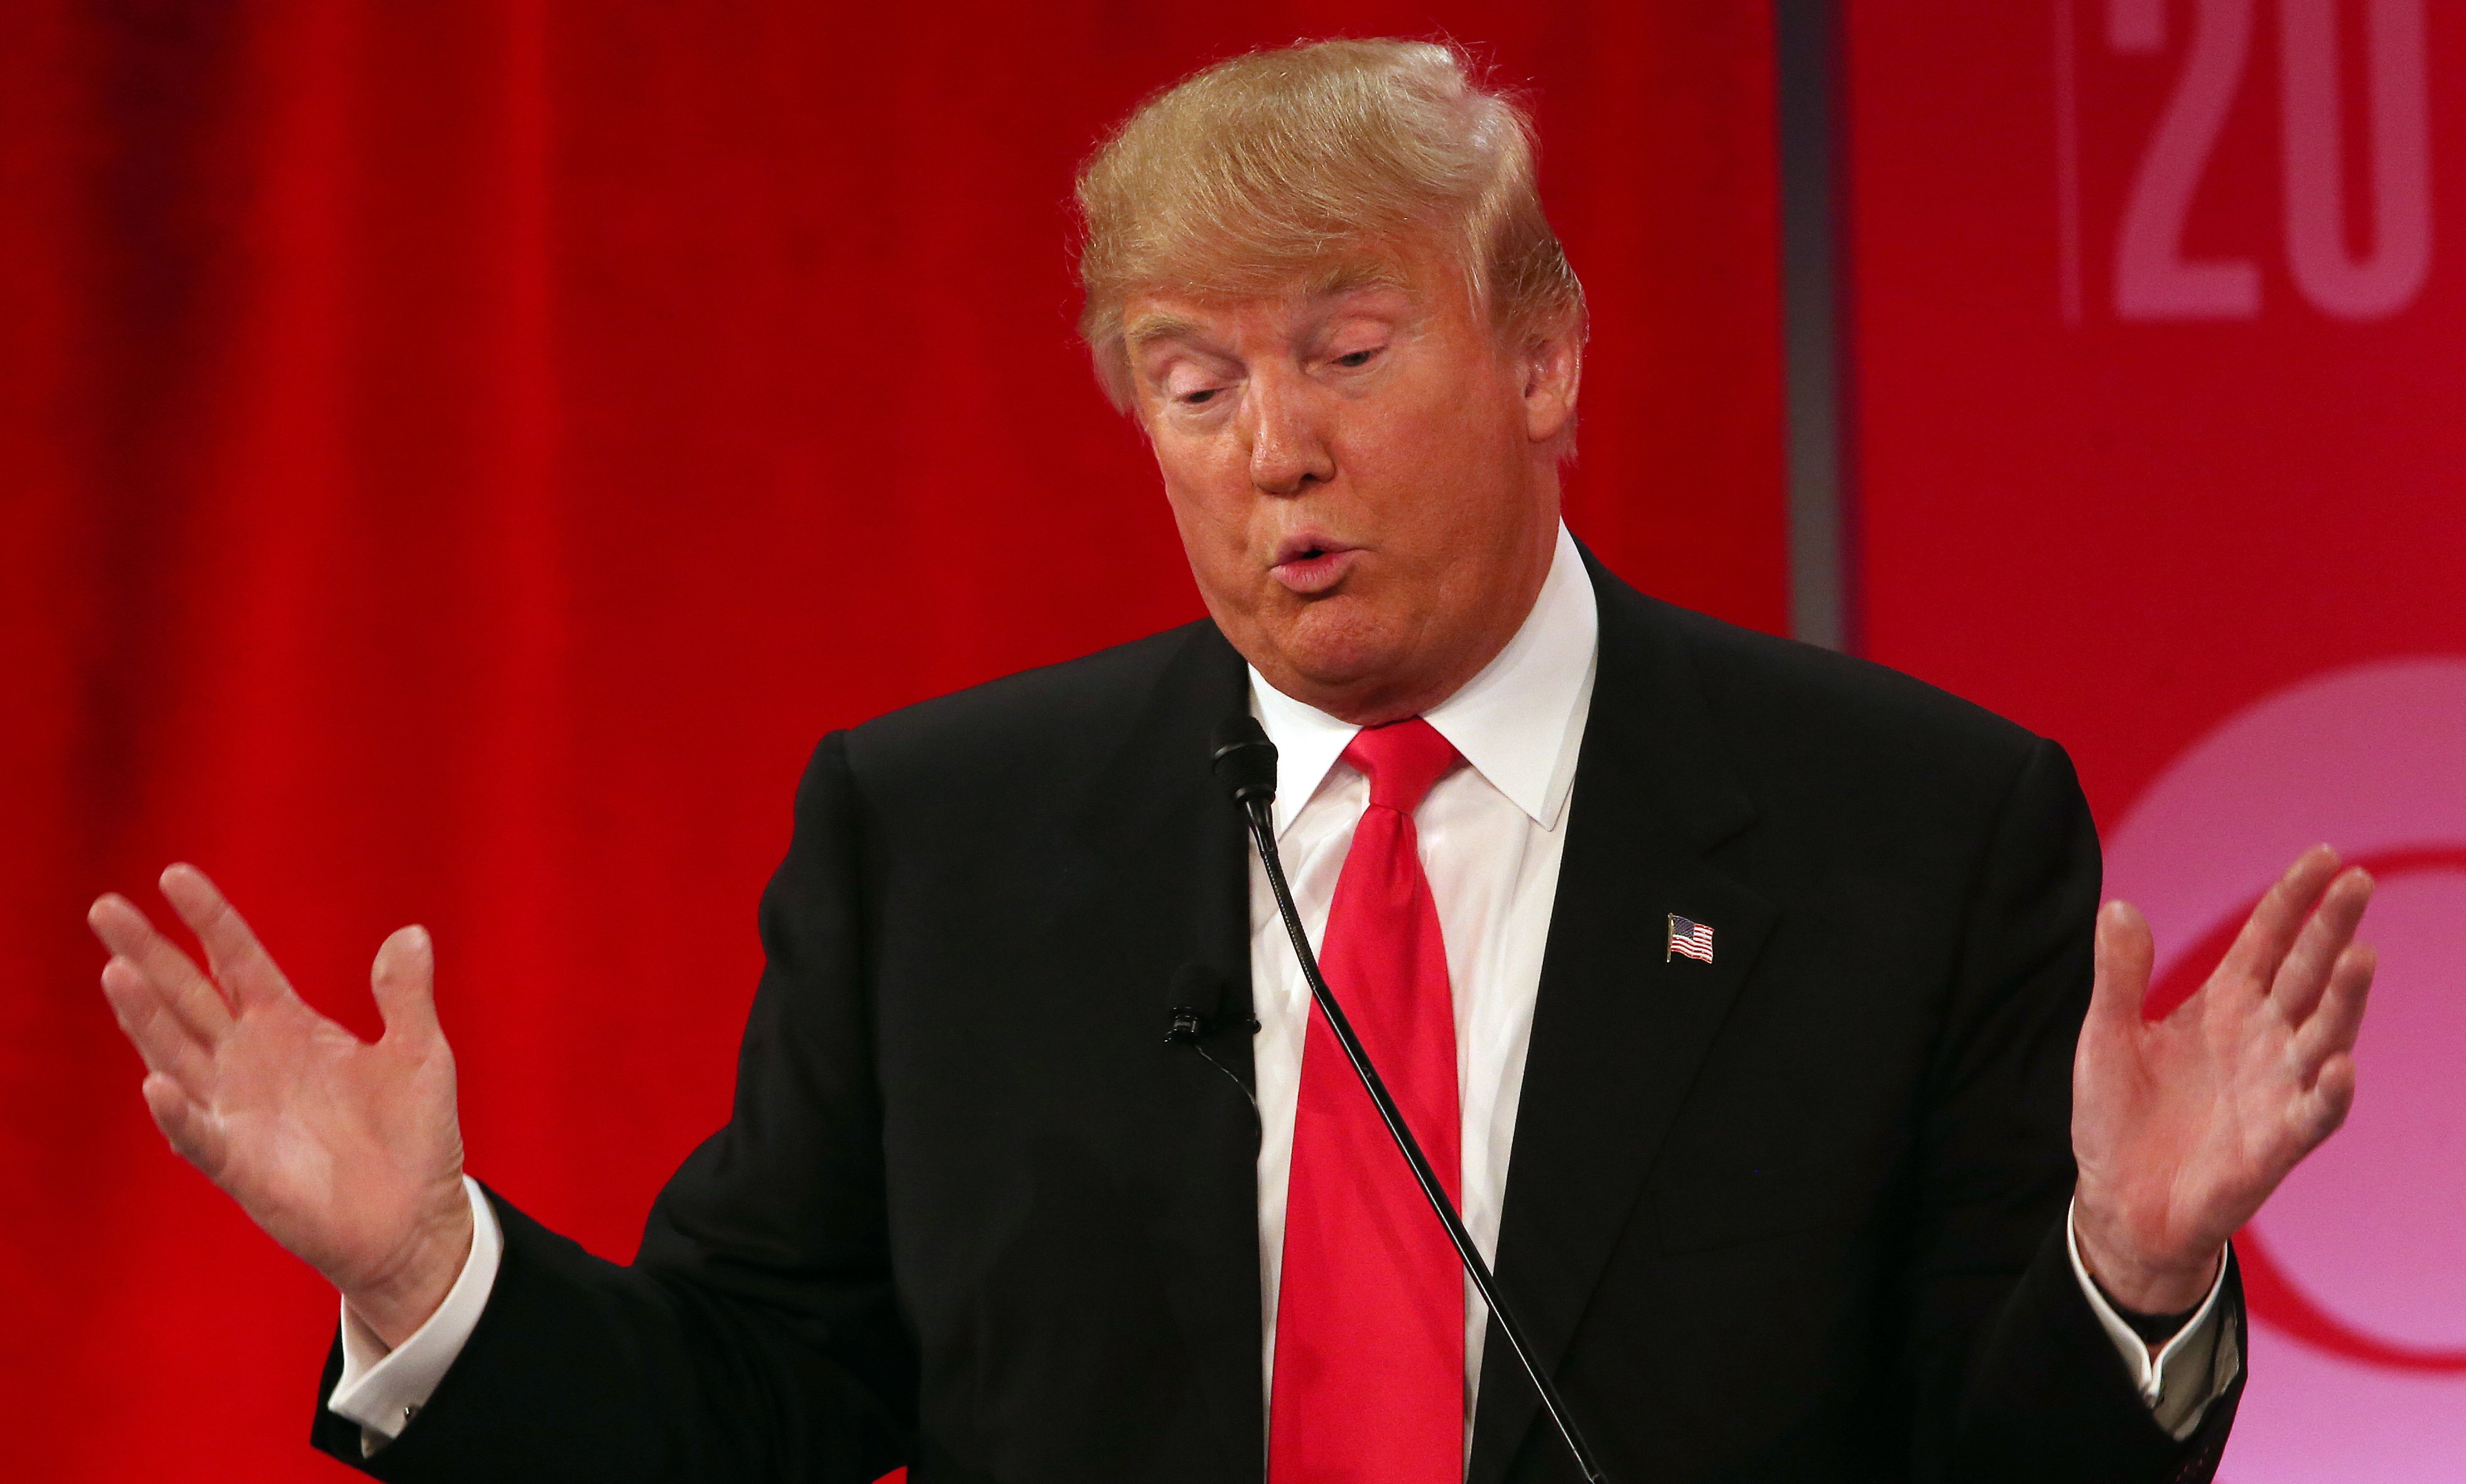 Republican presidential candidate Donald Trump speaks during the CBS News Republican presidential debate at the Peace Center, Feb. 13, 2016, in Greenville, S.C.